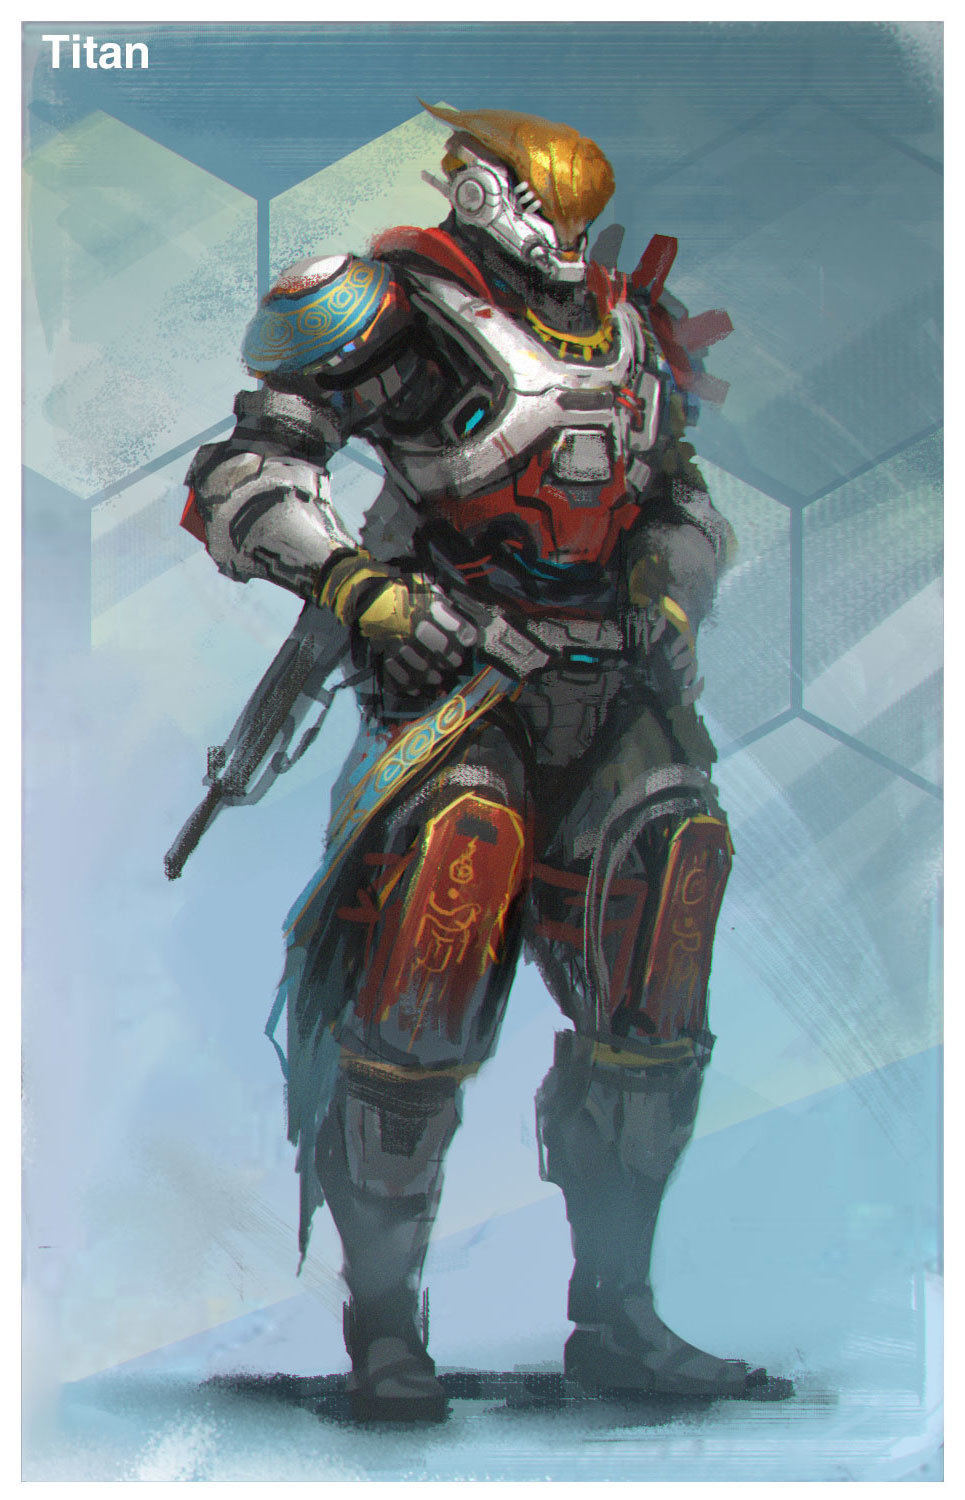 Destiny Fan Art by Mole Wang